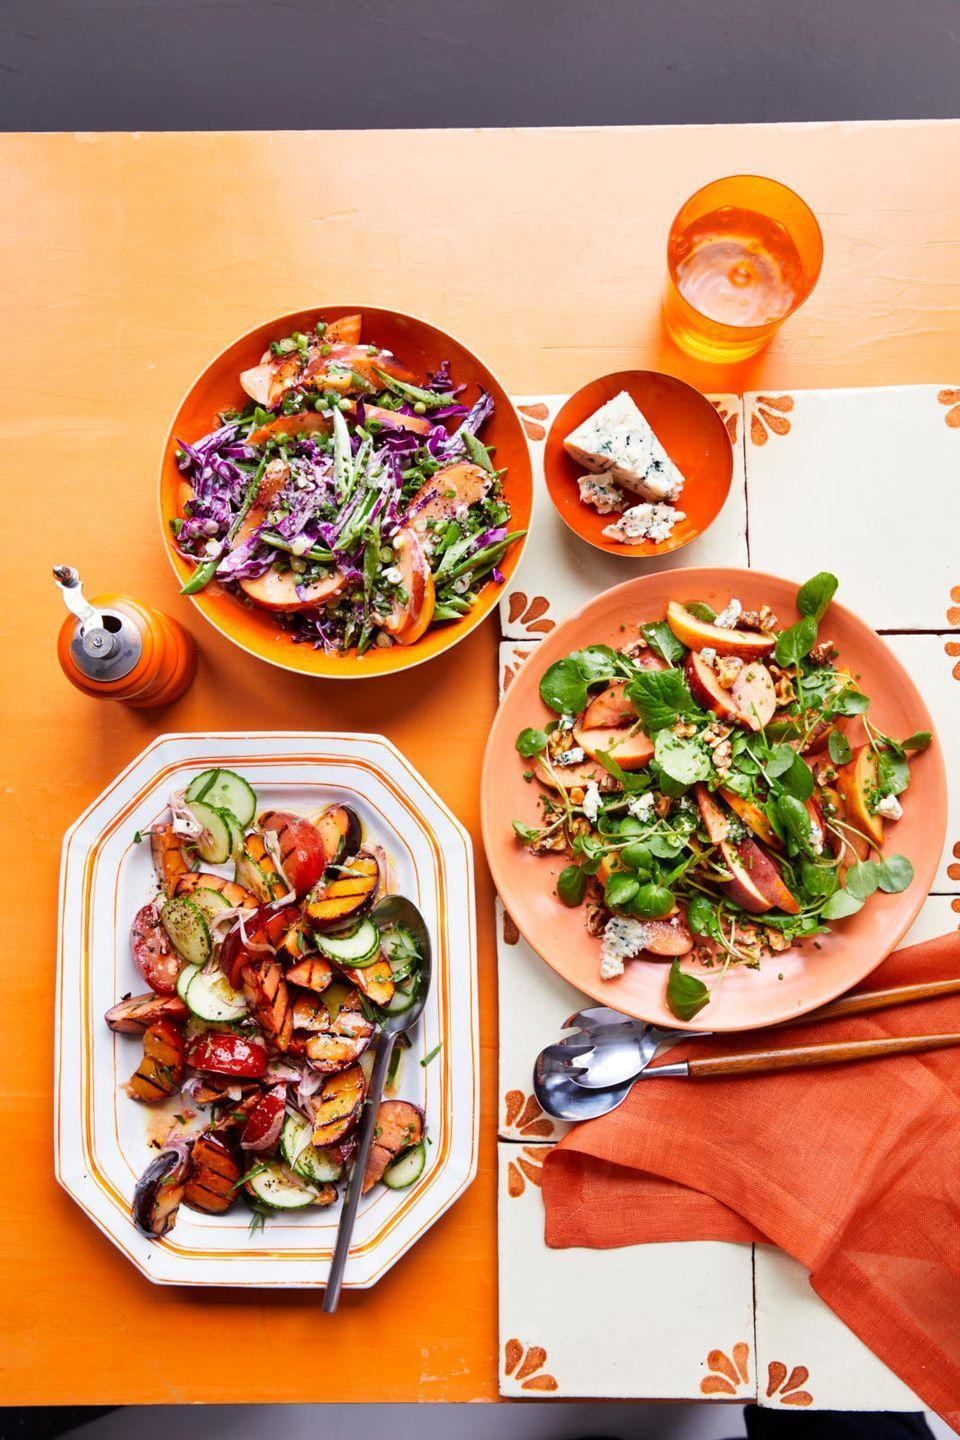 """<p>Throw summer fruit onto the BBQ and watch the grill works its magic. This cooking method amps up the caramelization of the plums' natural sugars (translation: the grill makes them sweeter and 10x more delicious). </p><p><em><a href=""""https://www.womansday.com/food-recipes/food-drinks/a22474606/gingery-grilled-stone-fruit-and-cucumber-salad-recipe/"""" rel=""""nofollow noopener"""" target=""""_blank"""" data-ylk=""""slk:Get the recipe for Gingery Grilled Stone Fruit and Cucumber Salad »"""" class=""""link rapid-noclick-resp"""">Get the recipe for Gingery Grilled Stone Fruit and Cucumber Salad »</a></em></p>"""